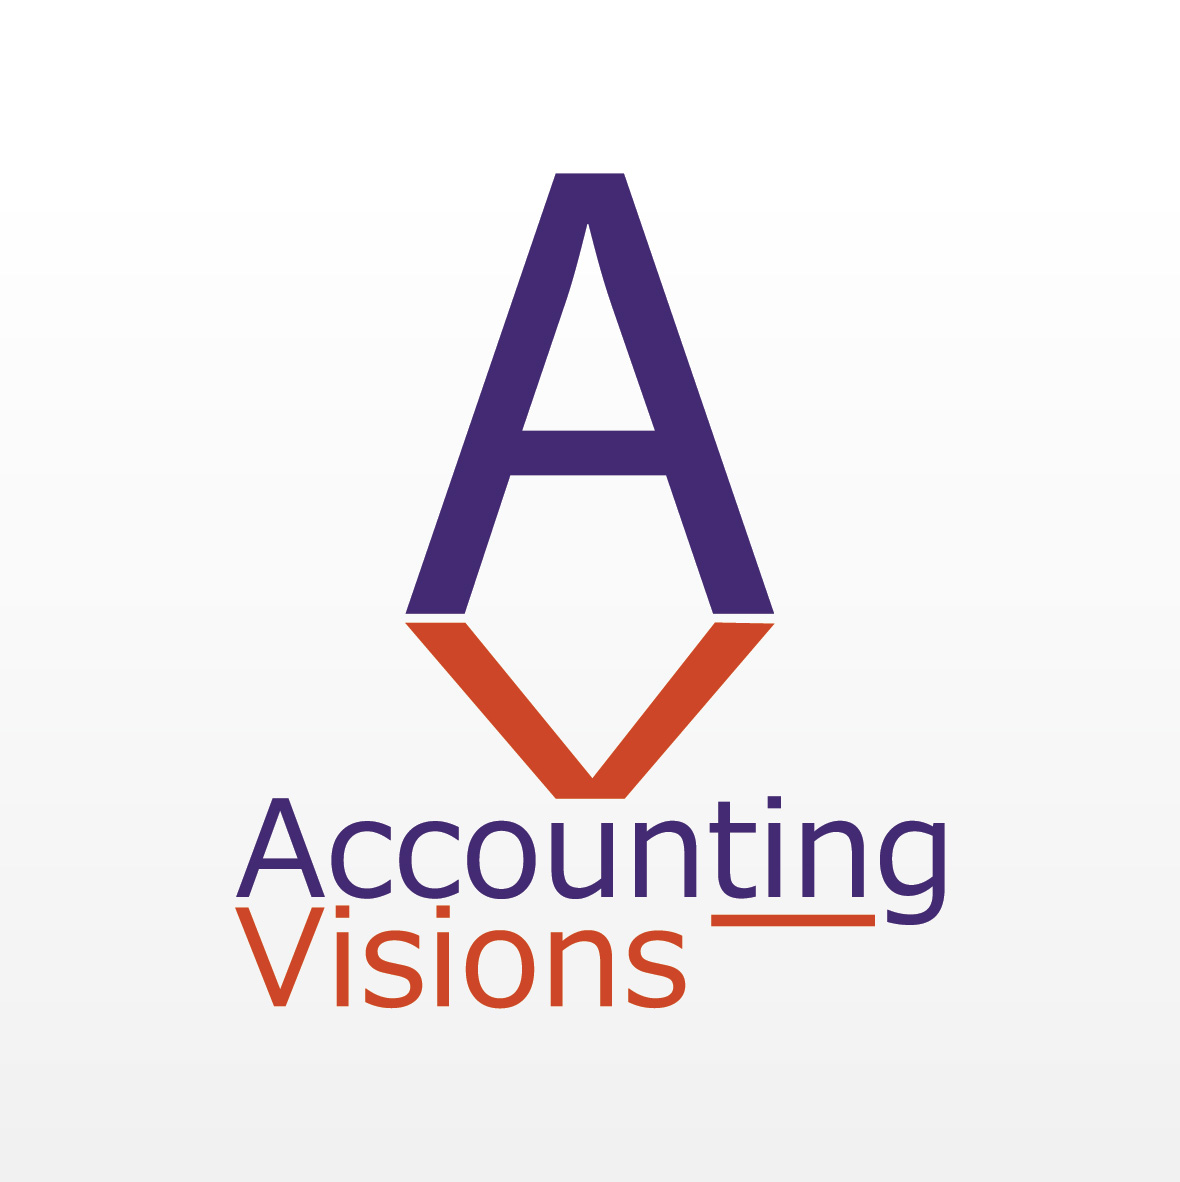 Logo Design by aesthetic-art - Entry No. 89 in the Logo Design Contest Accounting Visions.